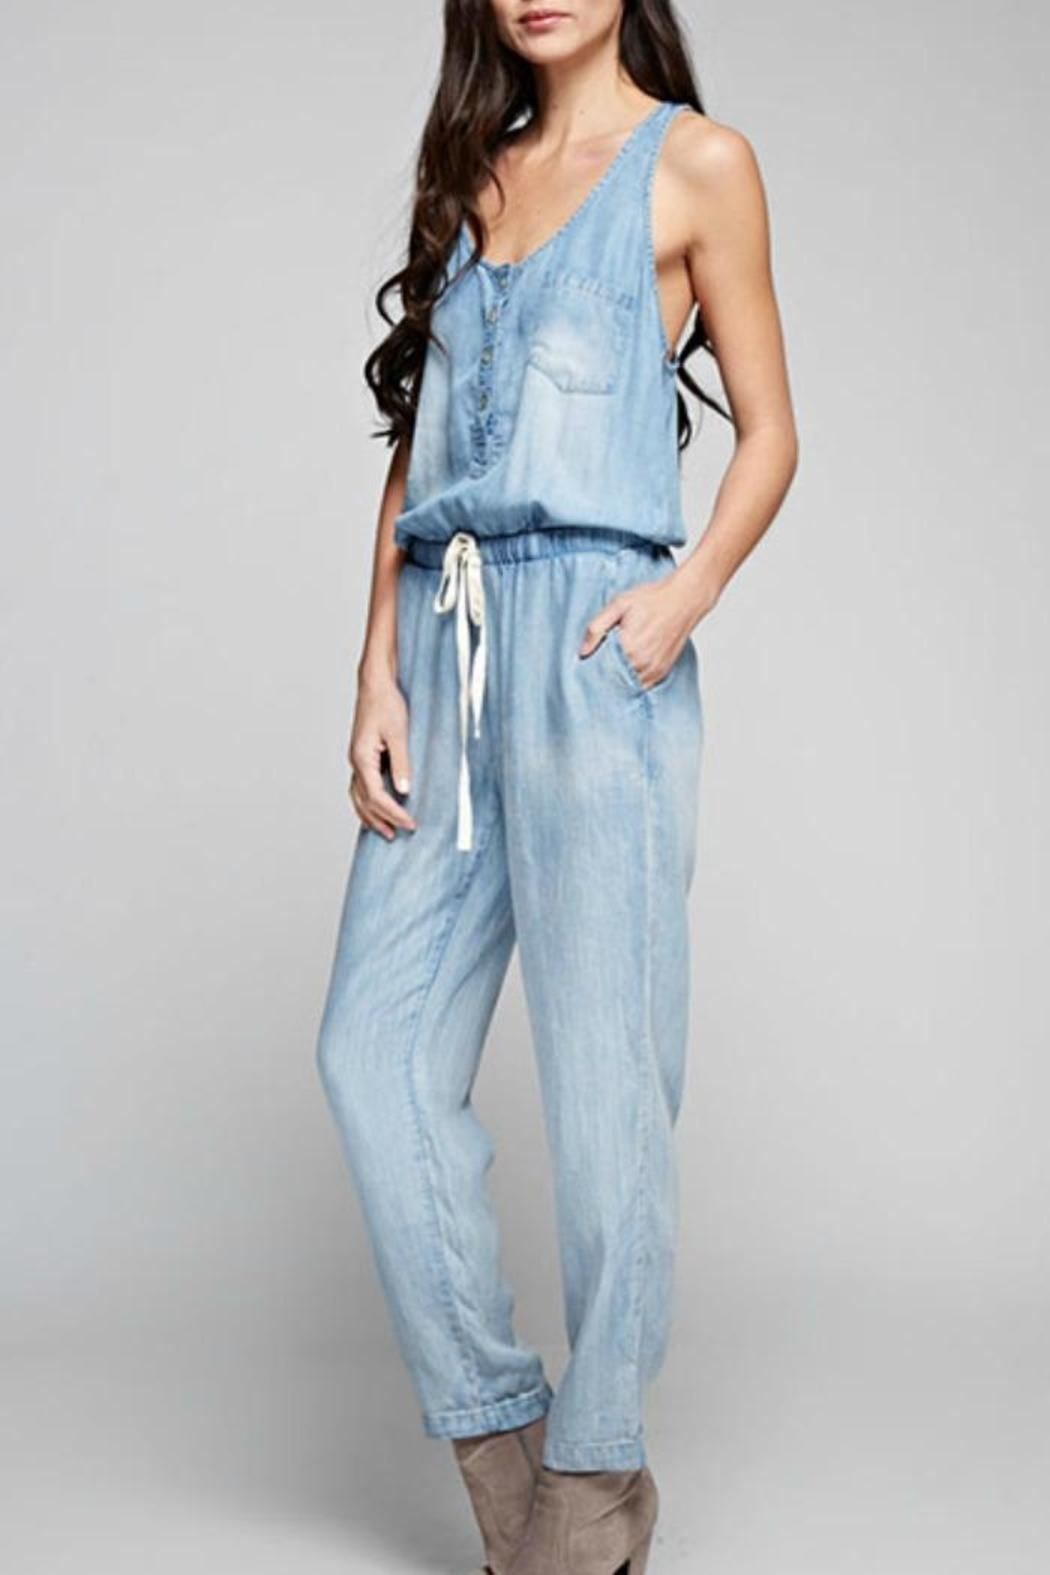 98a0f194e172 To style your own look roll the ankles and add some sandals for that  perfect summer look. Fun Denim Jumpsuit by Apricot Lane. Clothing -  Jumpsuits   Rompers ...